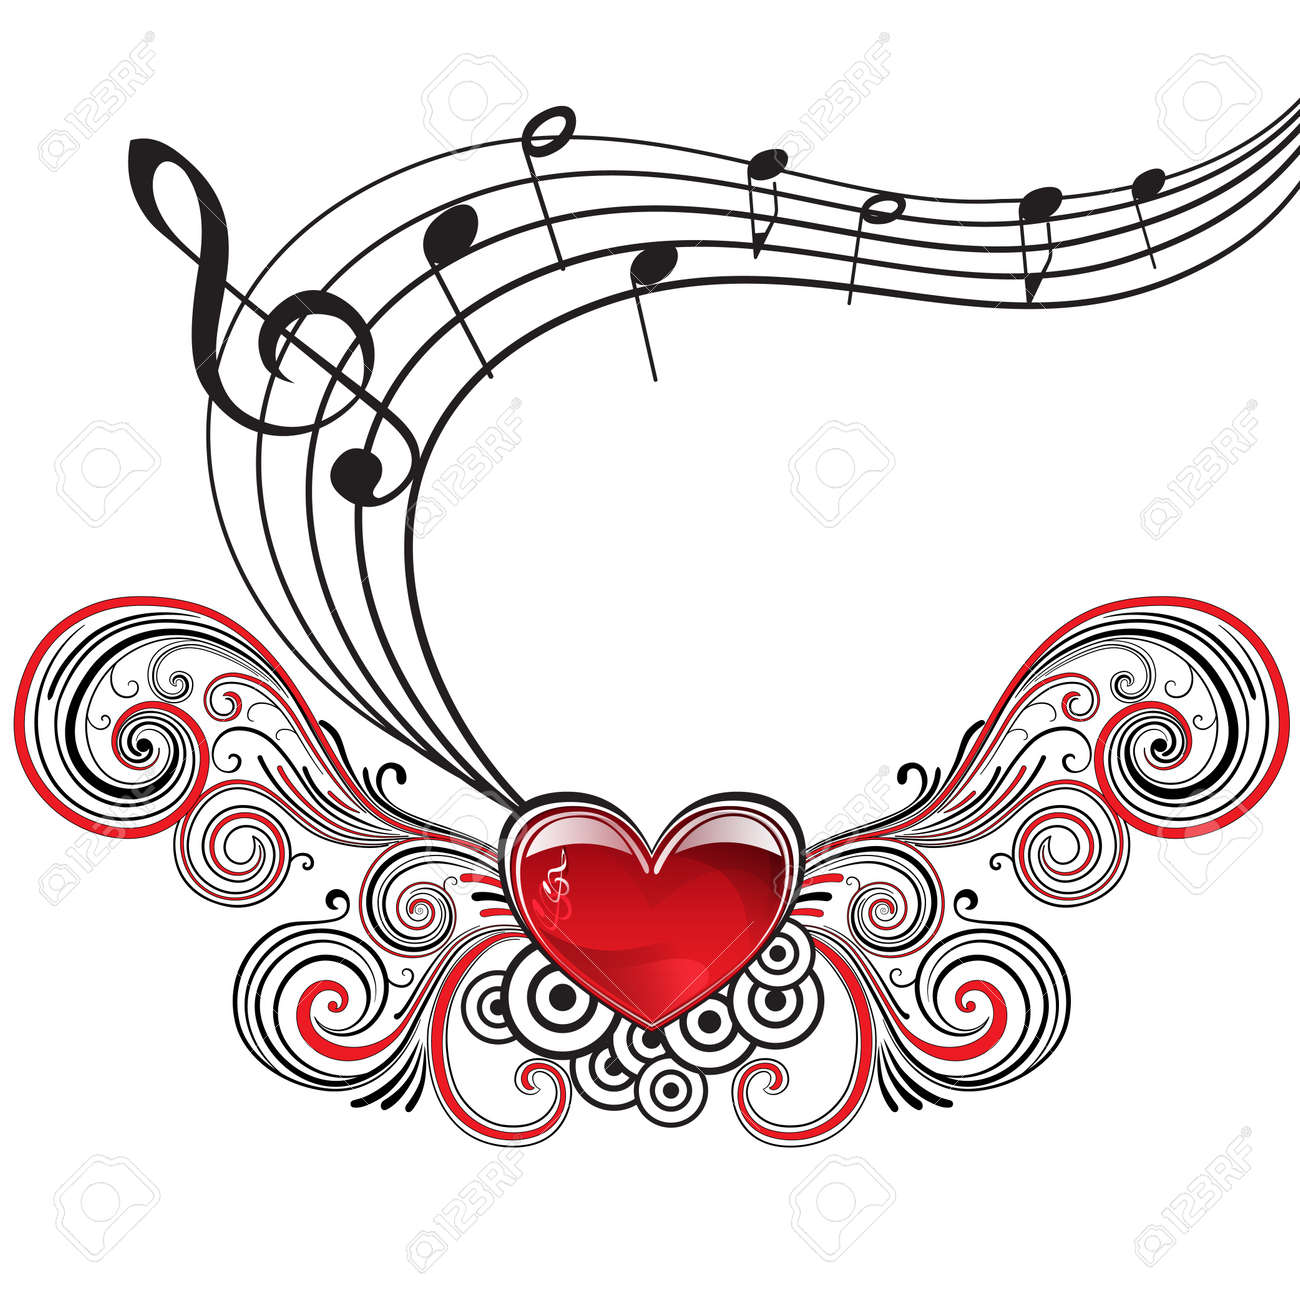 heart in grunge style with musical notes and treble clef royalty rh 123rf com Music Notes Graphics Music Notes Graphics